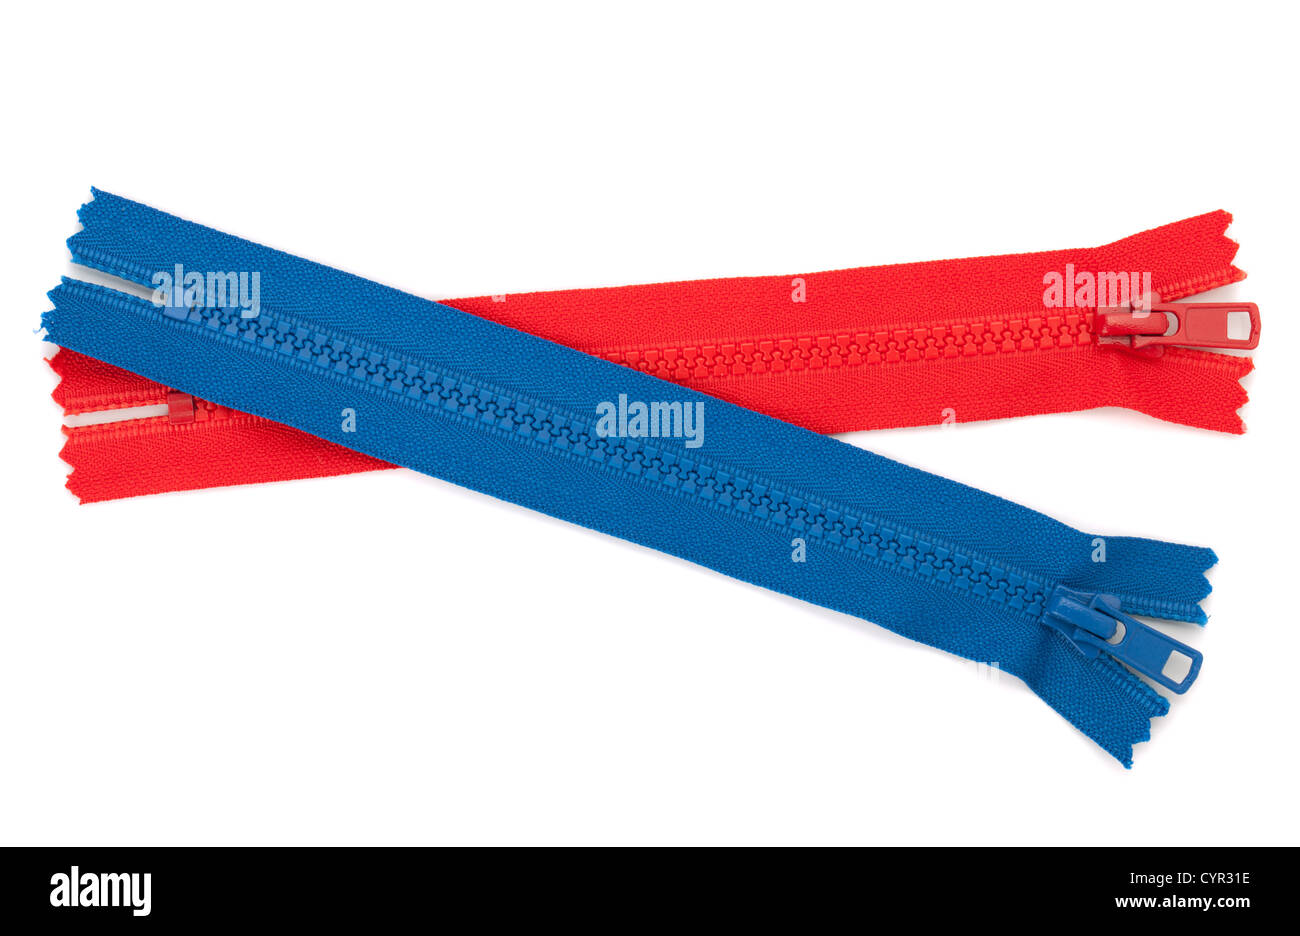 Blue and red zippers. Isolated on white background - Stock Image